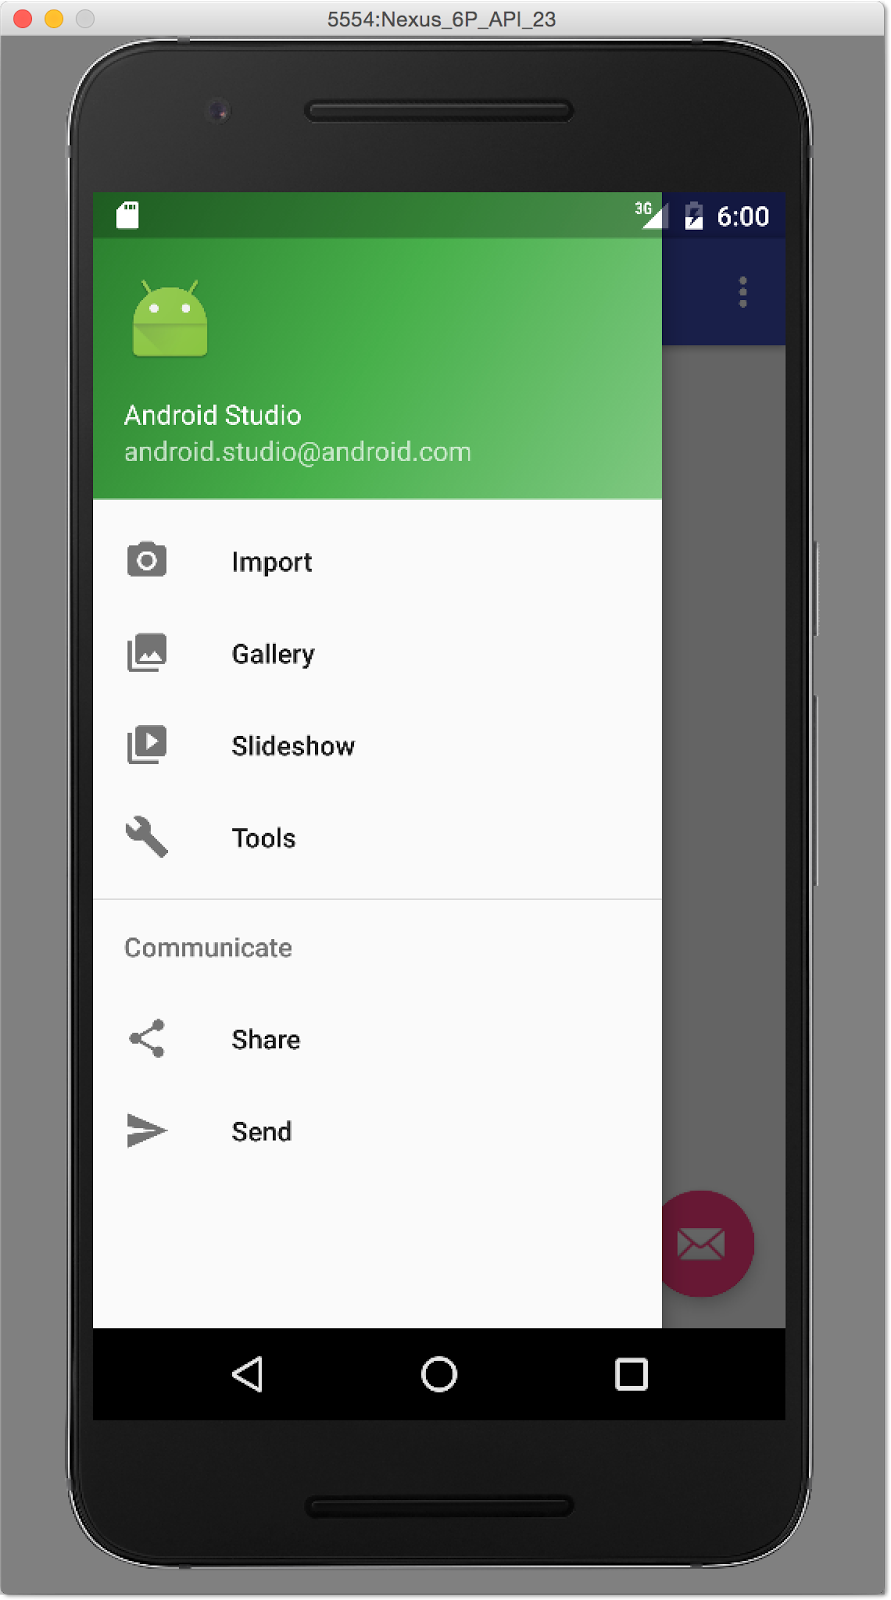 Android developers blog android studio 14 with android studio 14 you can also validate your apps on the new nexus 5x and nexus 6p screen sizes pronofoot35fo Images